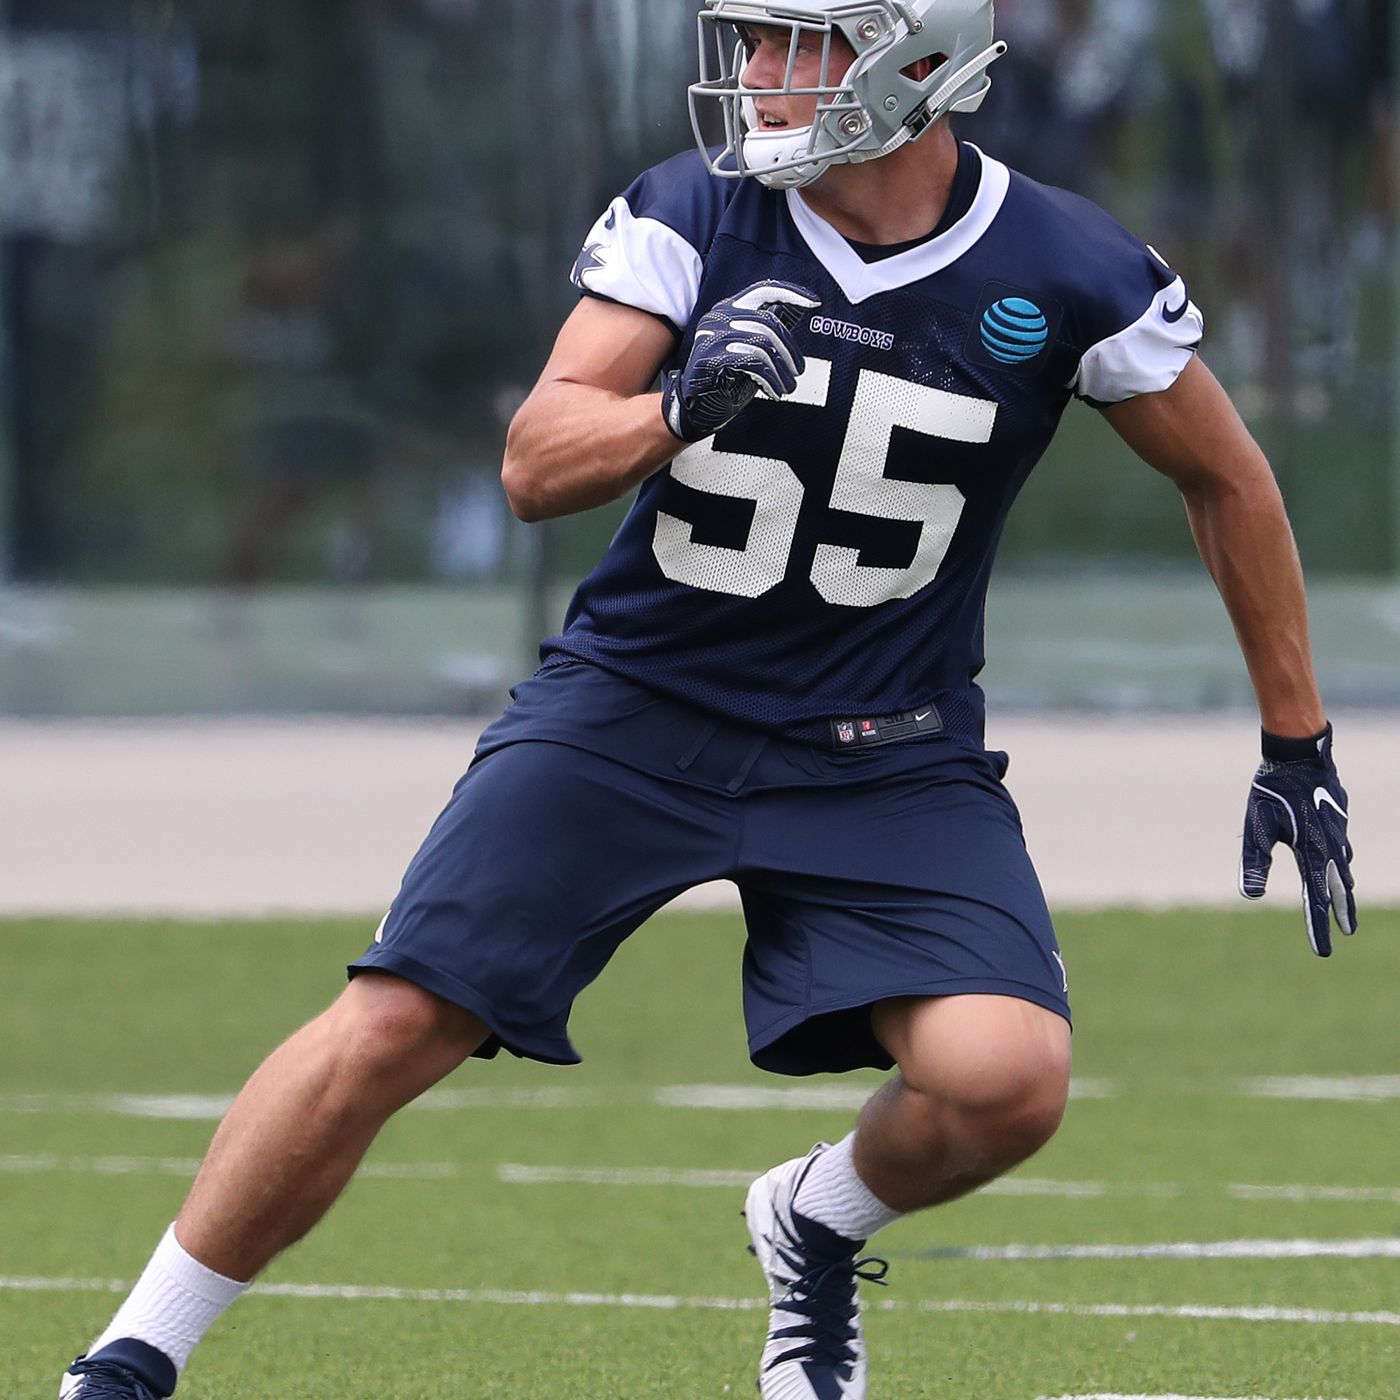 c7db7f0cf4a Cowboys Q&A: Leighton Vander Esch's availability? Who will lead the Cowboys  in catches this season? - Blogging The Boys